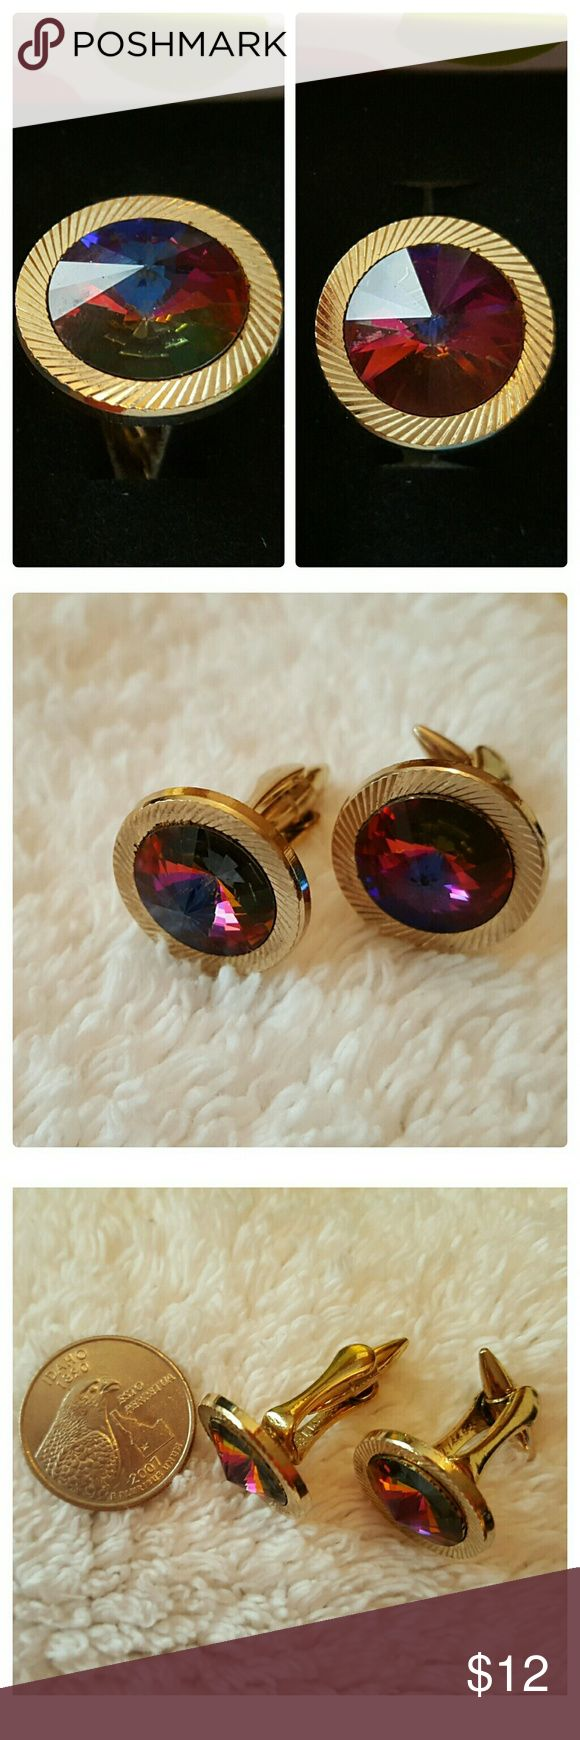 JUST IN: Vintage 1970s Cufflinks EUC Pair of cufflinks from at least 1970s, belonged to my dad. Excellent used condition.  Fully functional. Tiny bit of tarnish on the back. Gold tone with rainbow colored crystal, color changes depending on the light. Has PAI and a number stamoed on inside. It may be the Brand, not absolutely sure though. Accessories Cuff Links